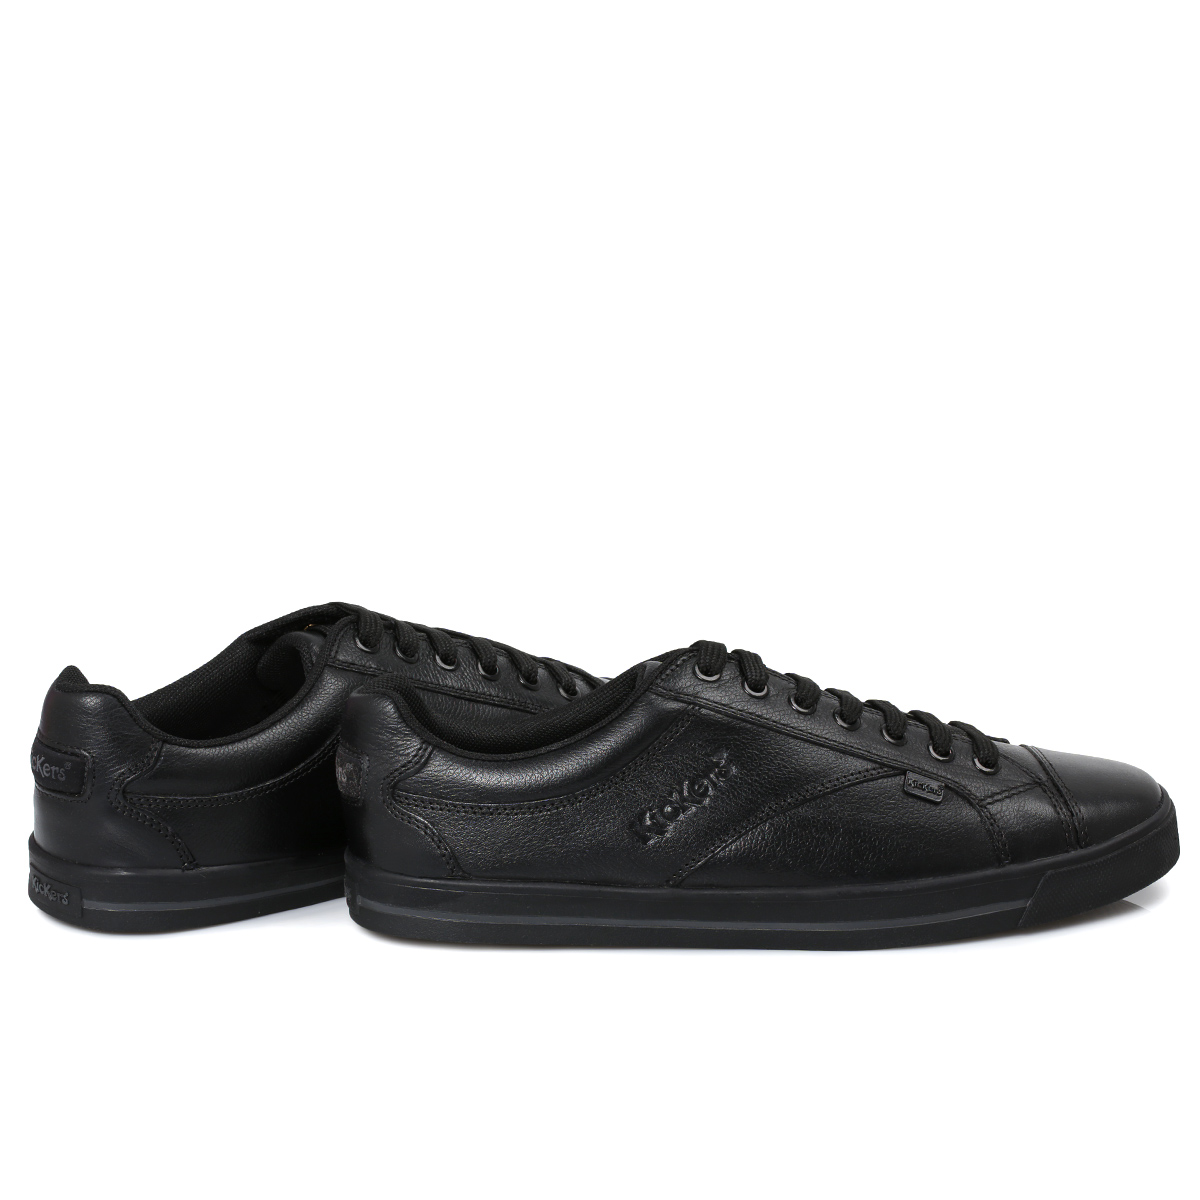 kickers wolny black lace leather boys mens school shoes